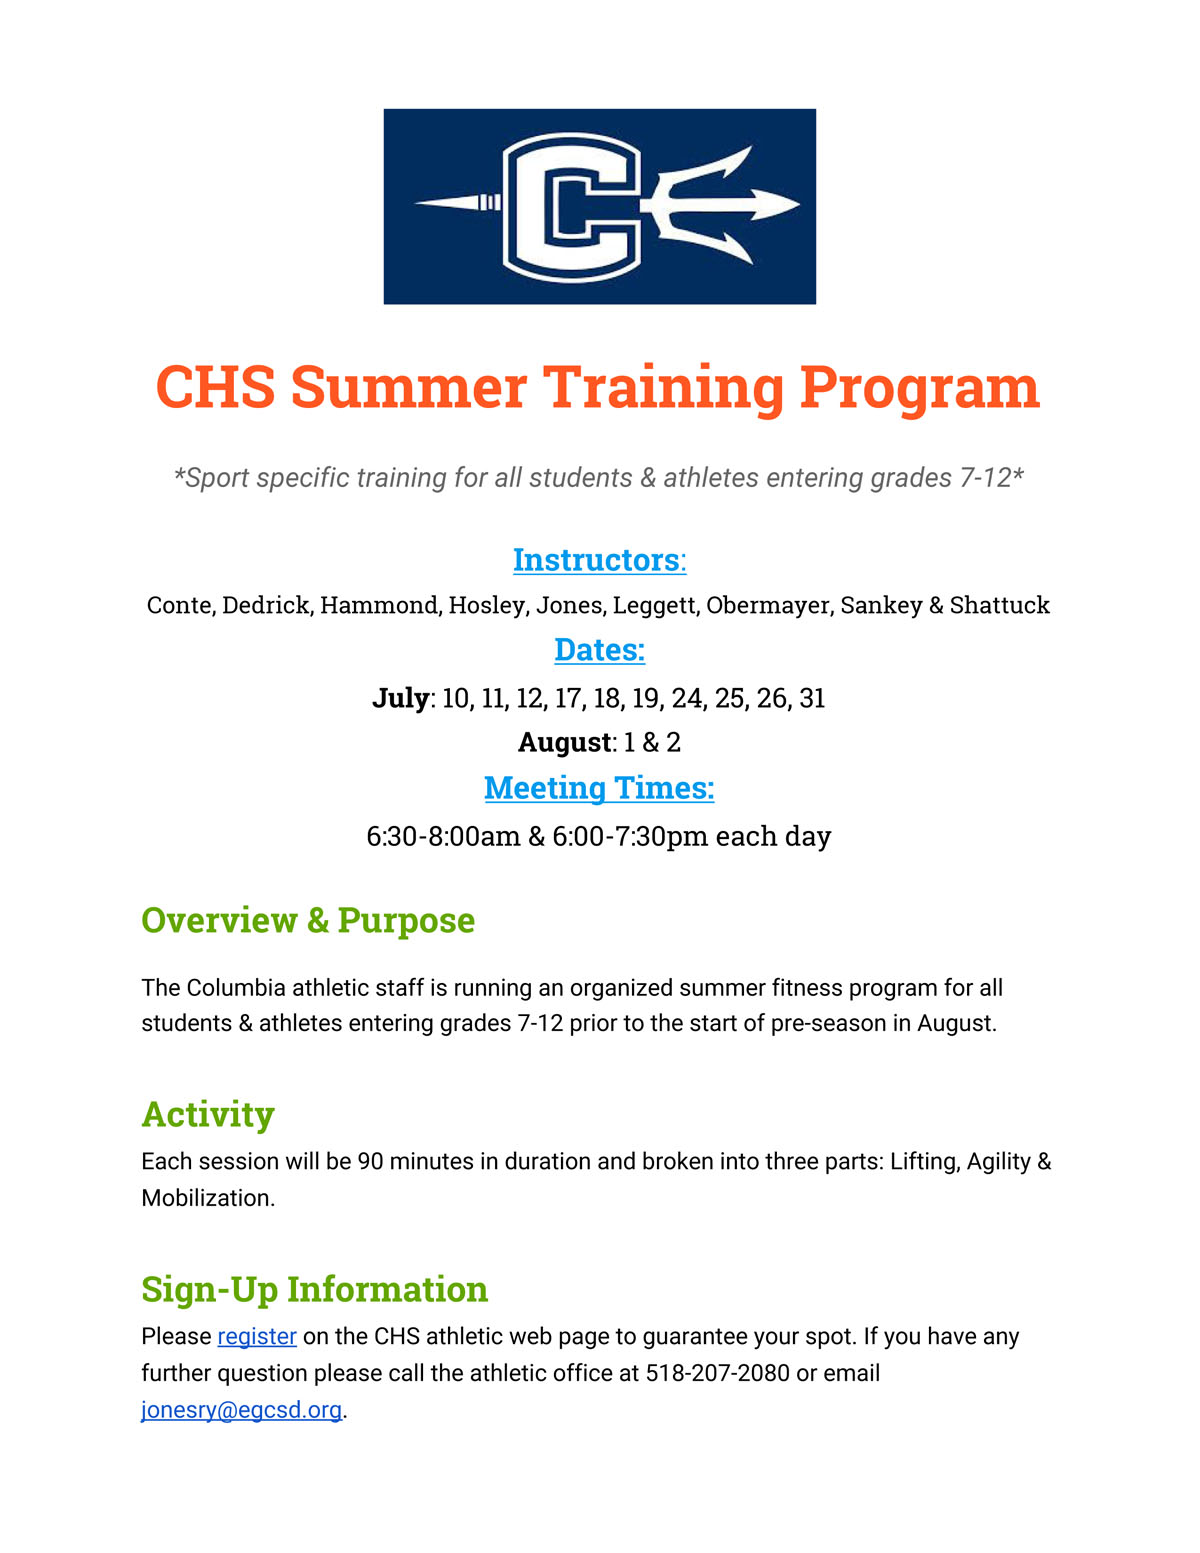 CHS Summer Fitness Training Flyer